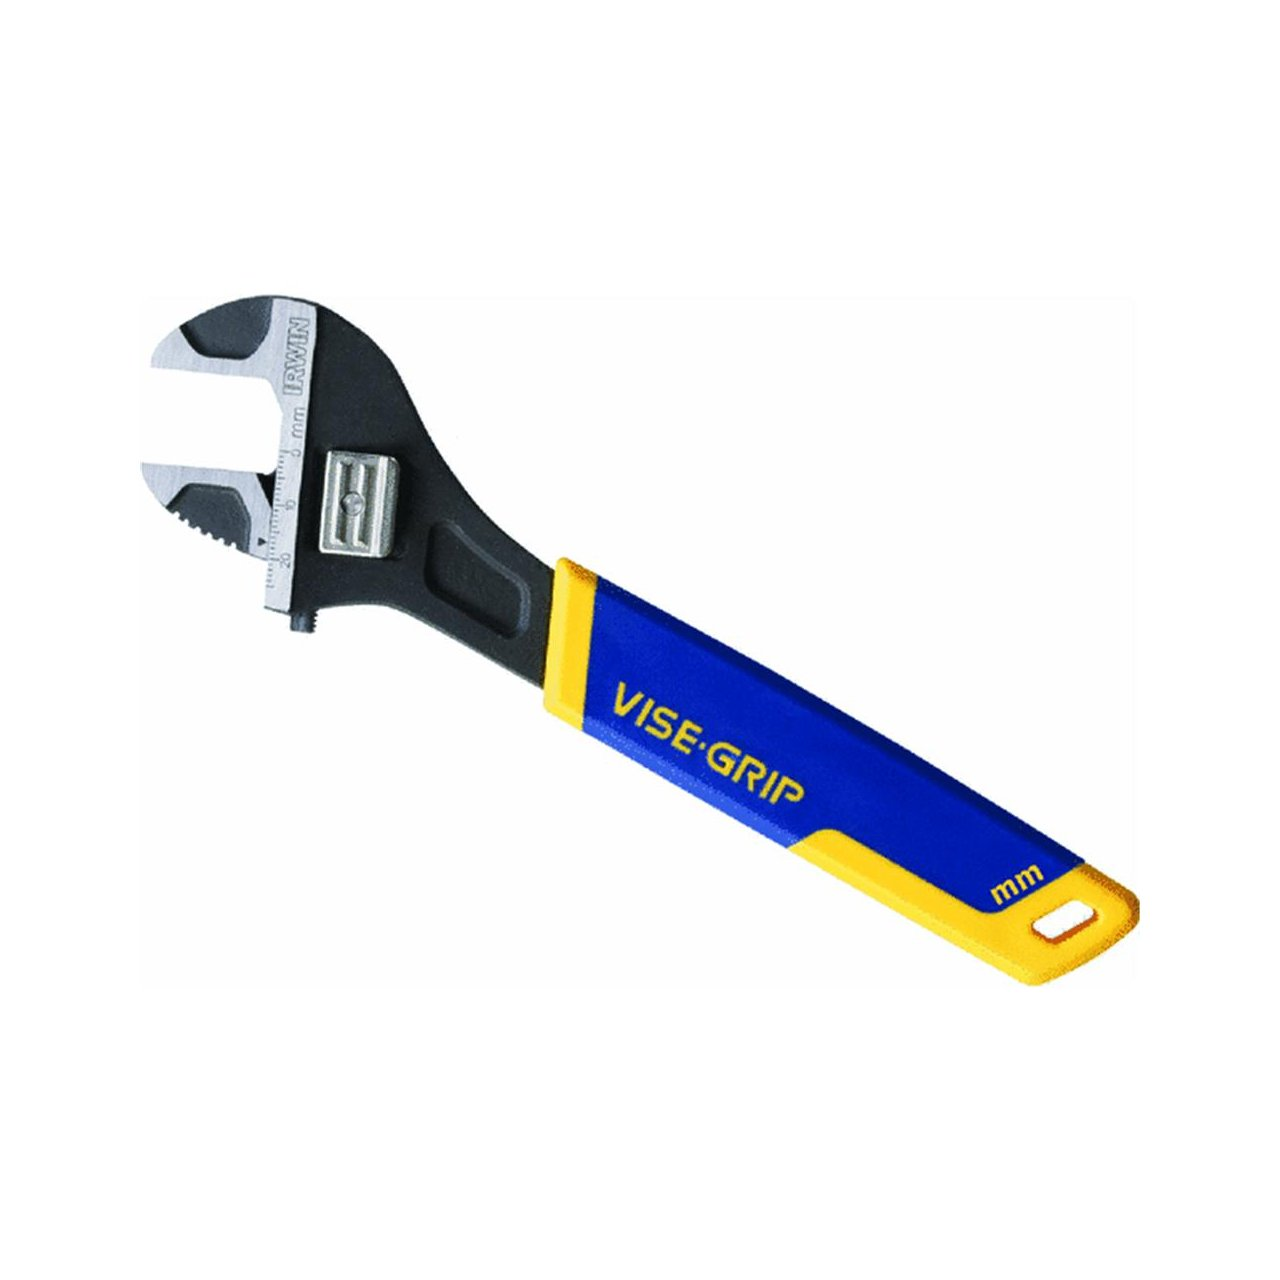 Irwin / Hanson / Vise Grip (VGP2078602) 8 Metric Quick Adjusting Wrench аккумуляторный триммер greenworks g40ph51k2